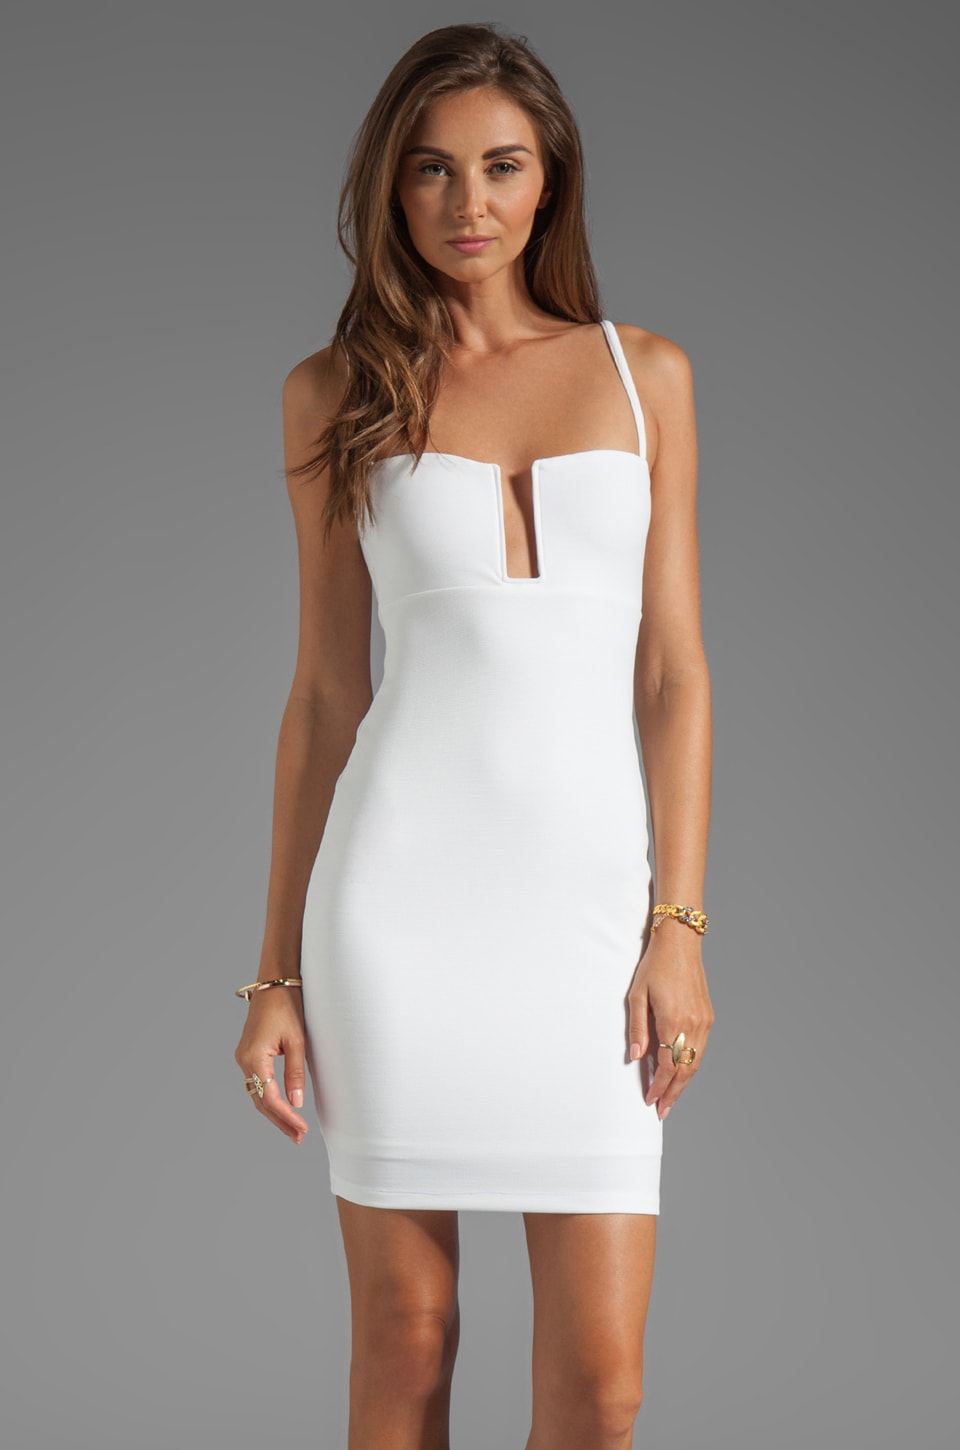 Nookie Stadium II Bustier Dress in White